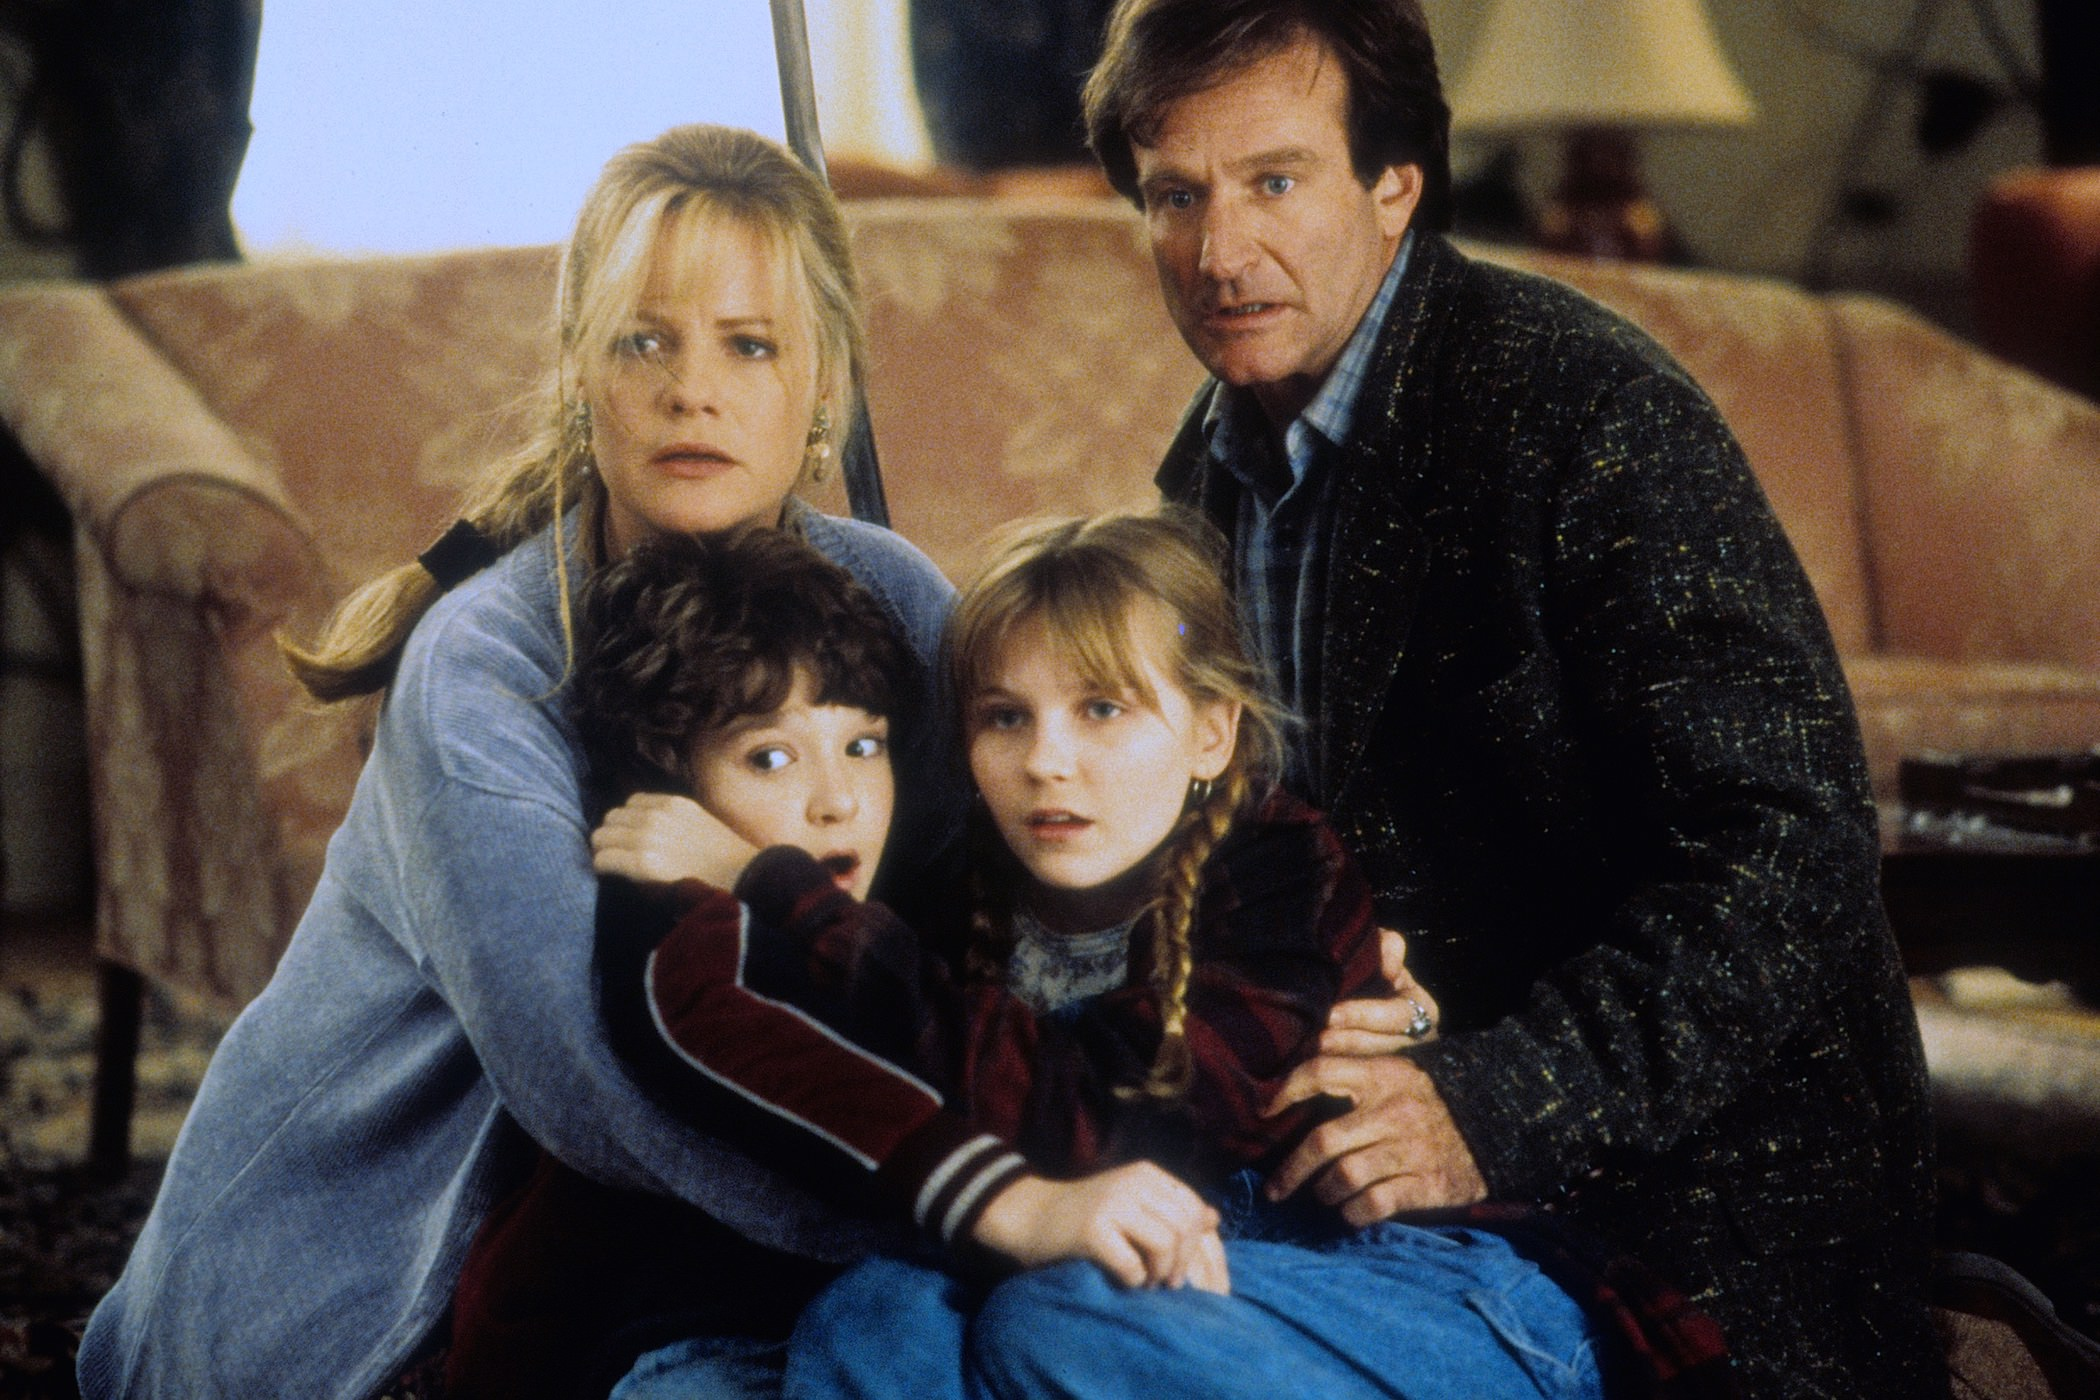 Jumanji bonnie hunt robin williams